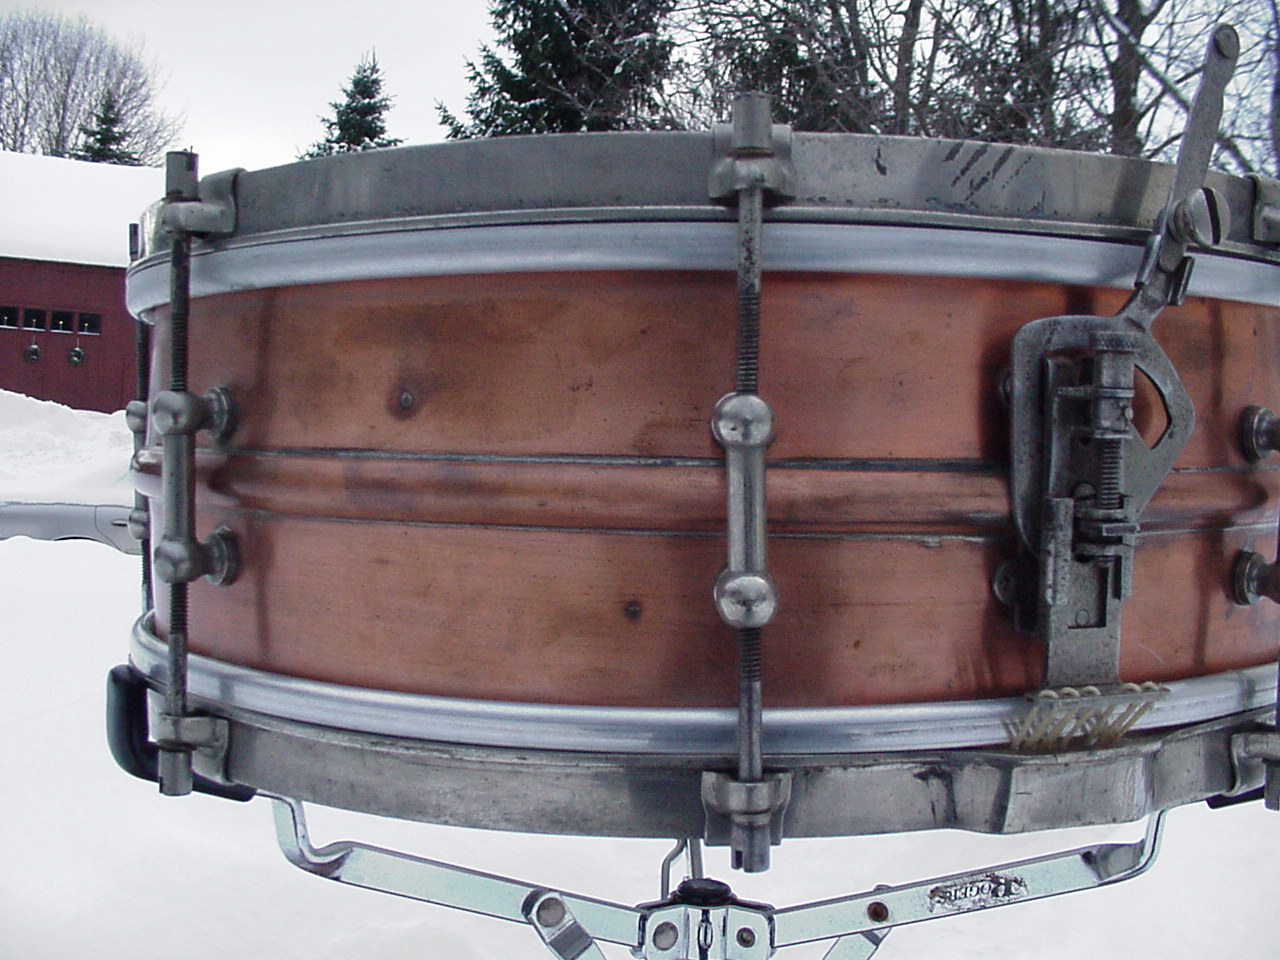 Jollity\'s Snare Drums